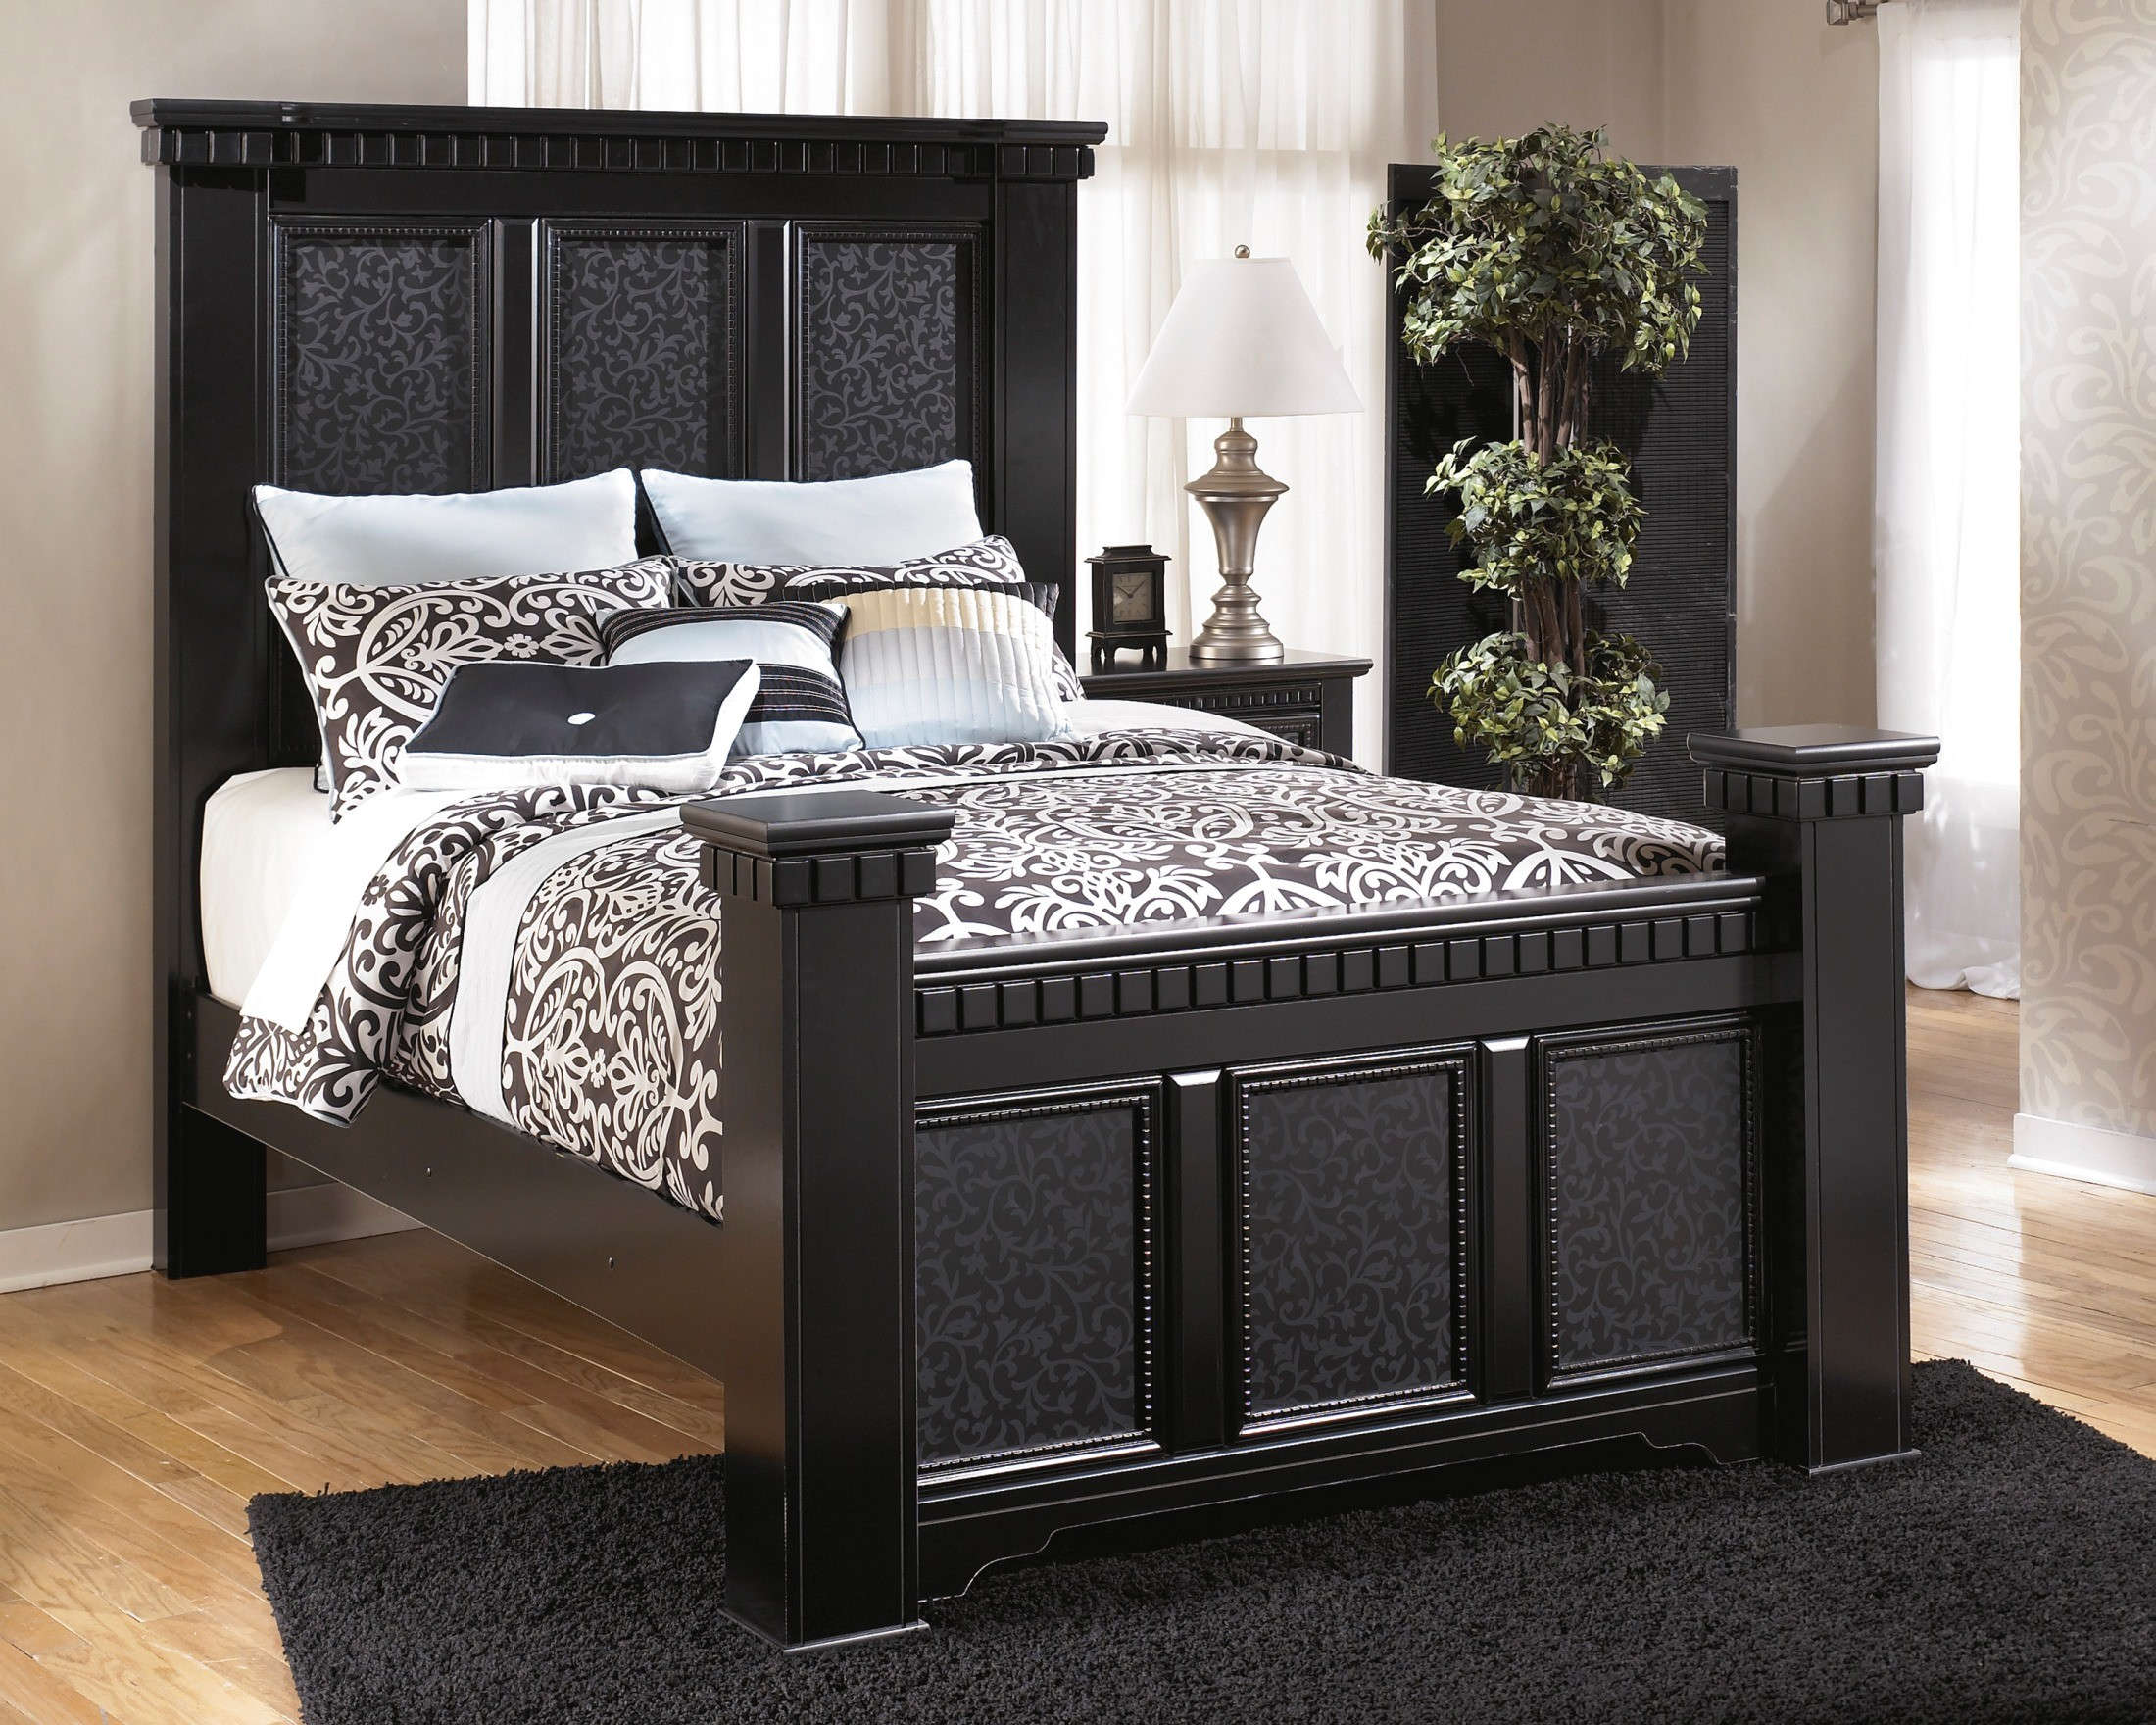 Cavallino King Mansion Bed From Ashley (B291-158-166-99